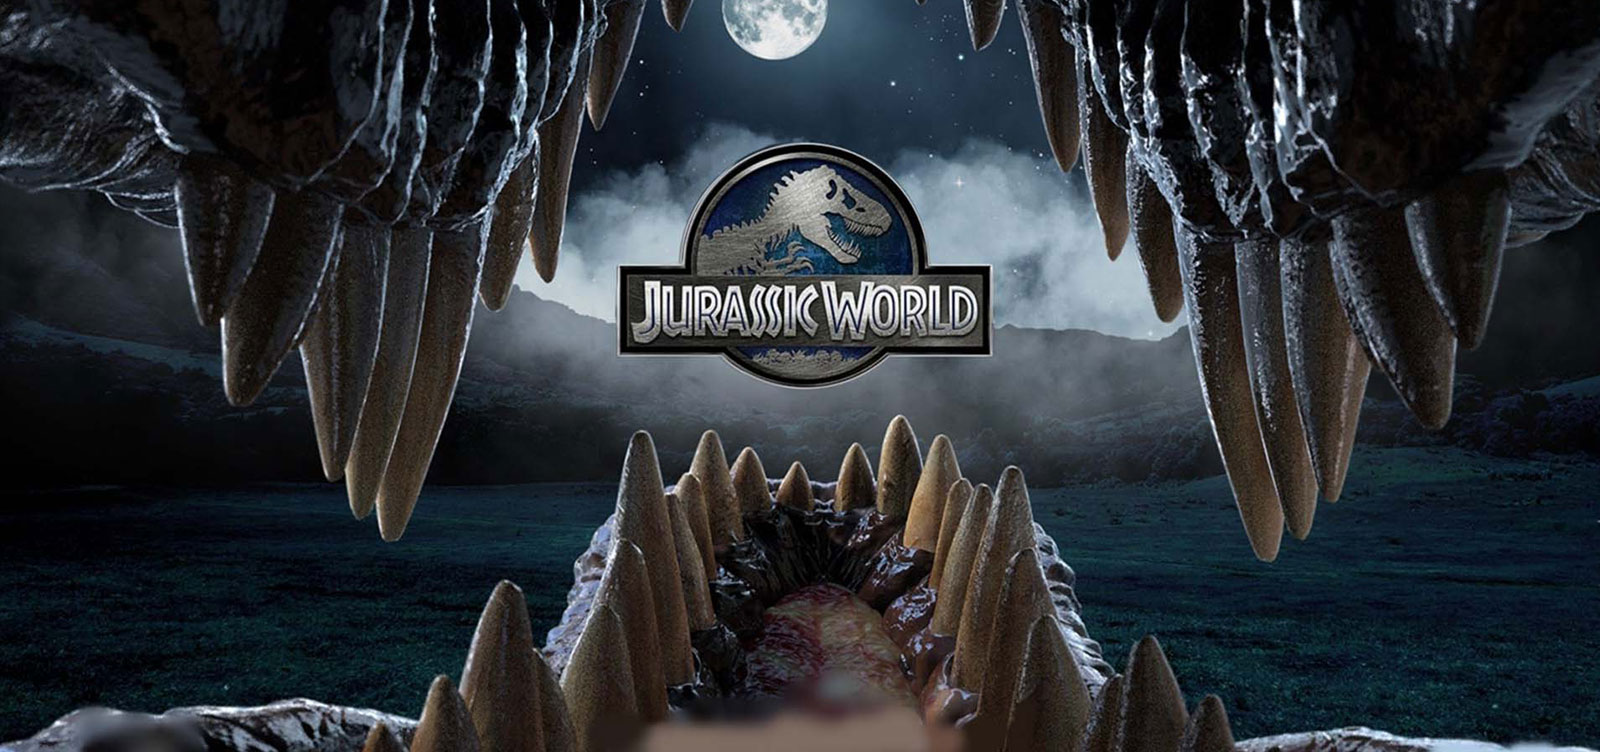 Jurrasic_World_Review_Images_v01